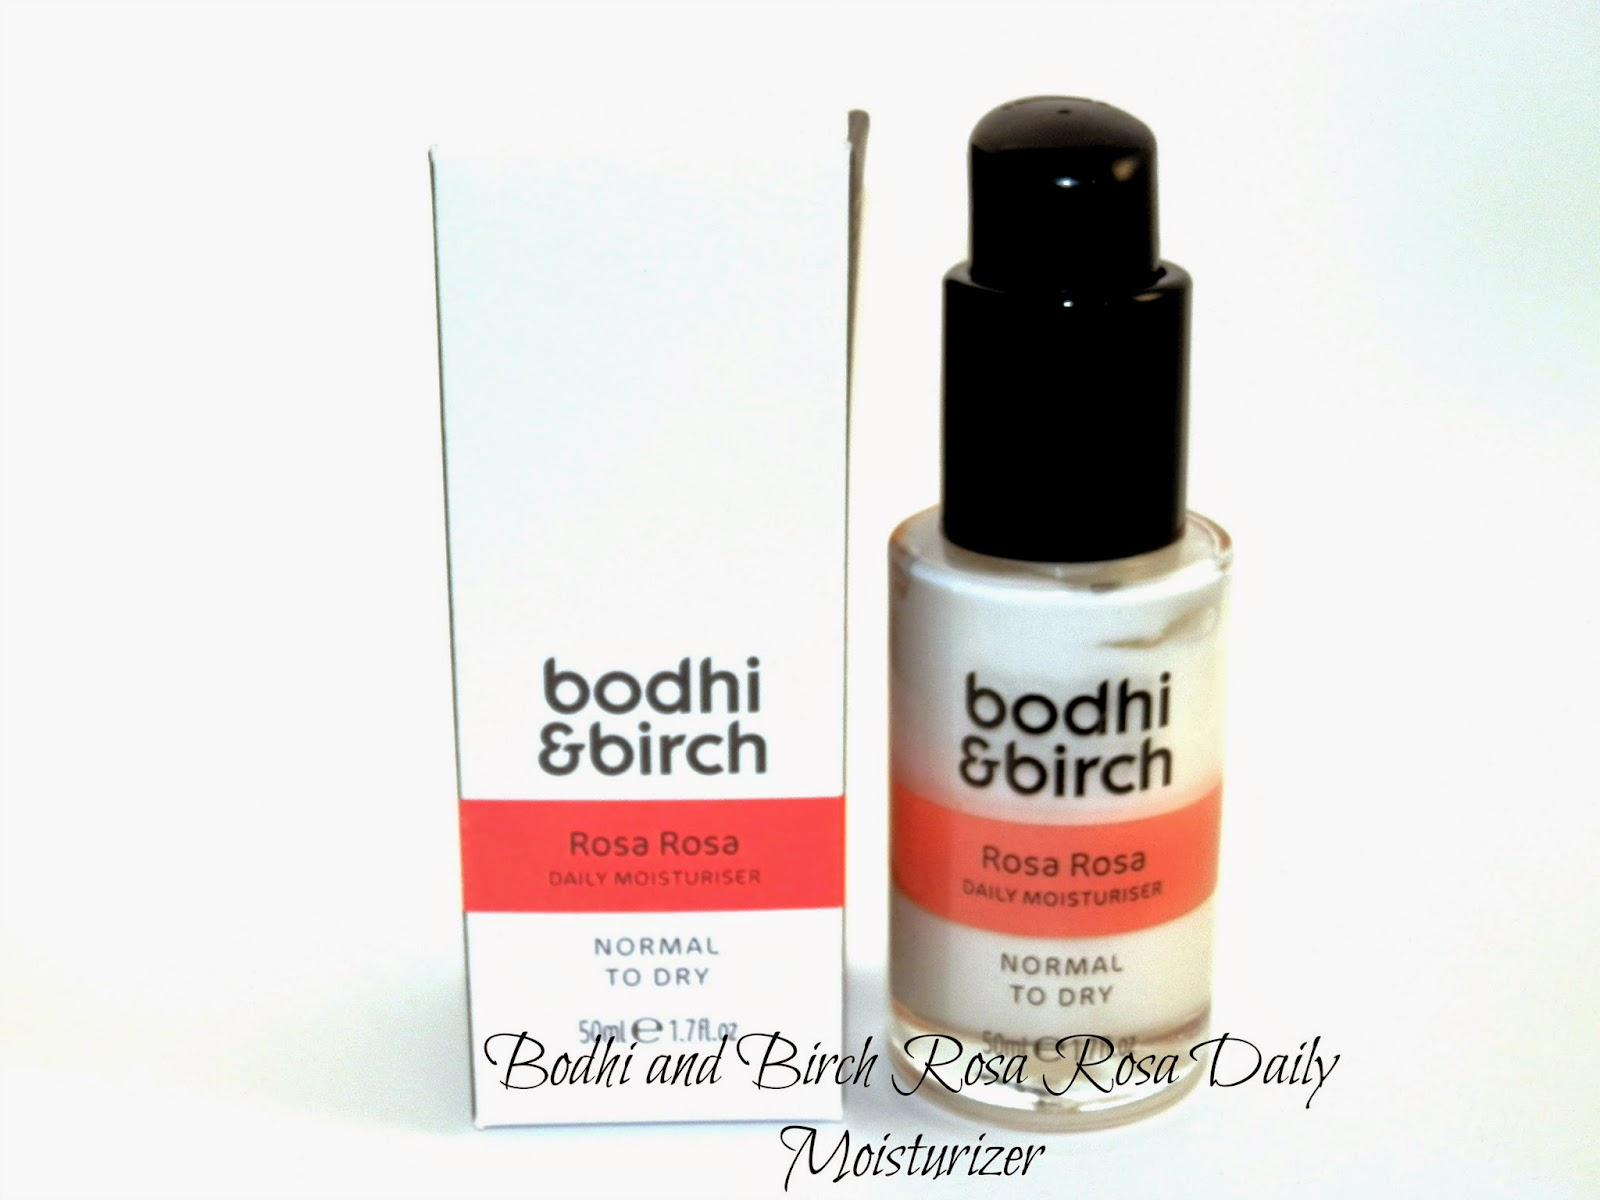 Bodhi and Birch Rosa Rosa Daily Moisturiser Reviews